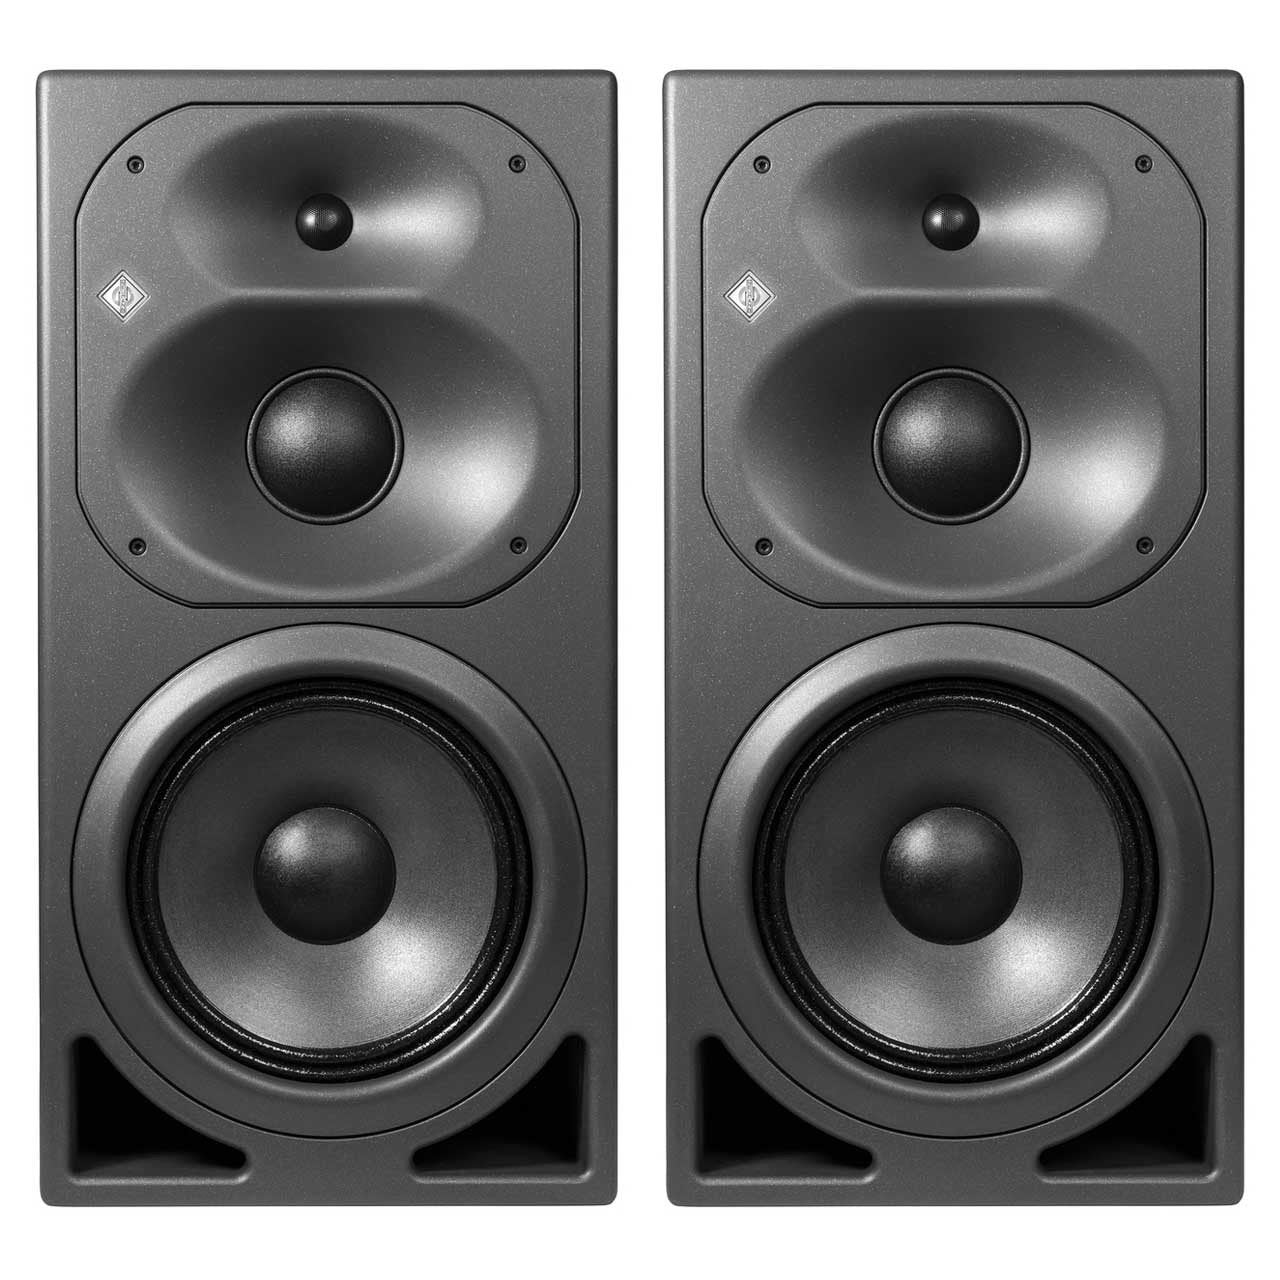 Active Studio Monitors - Neumann KH 420 Professional Active Studio Monitors PAIR